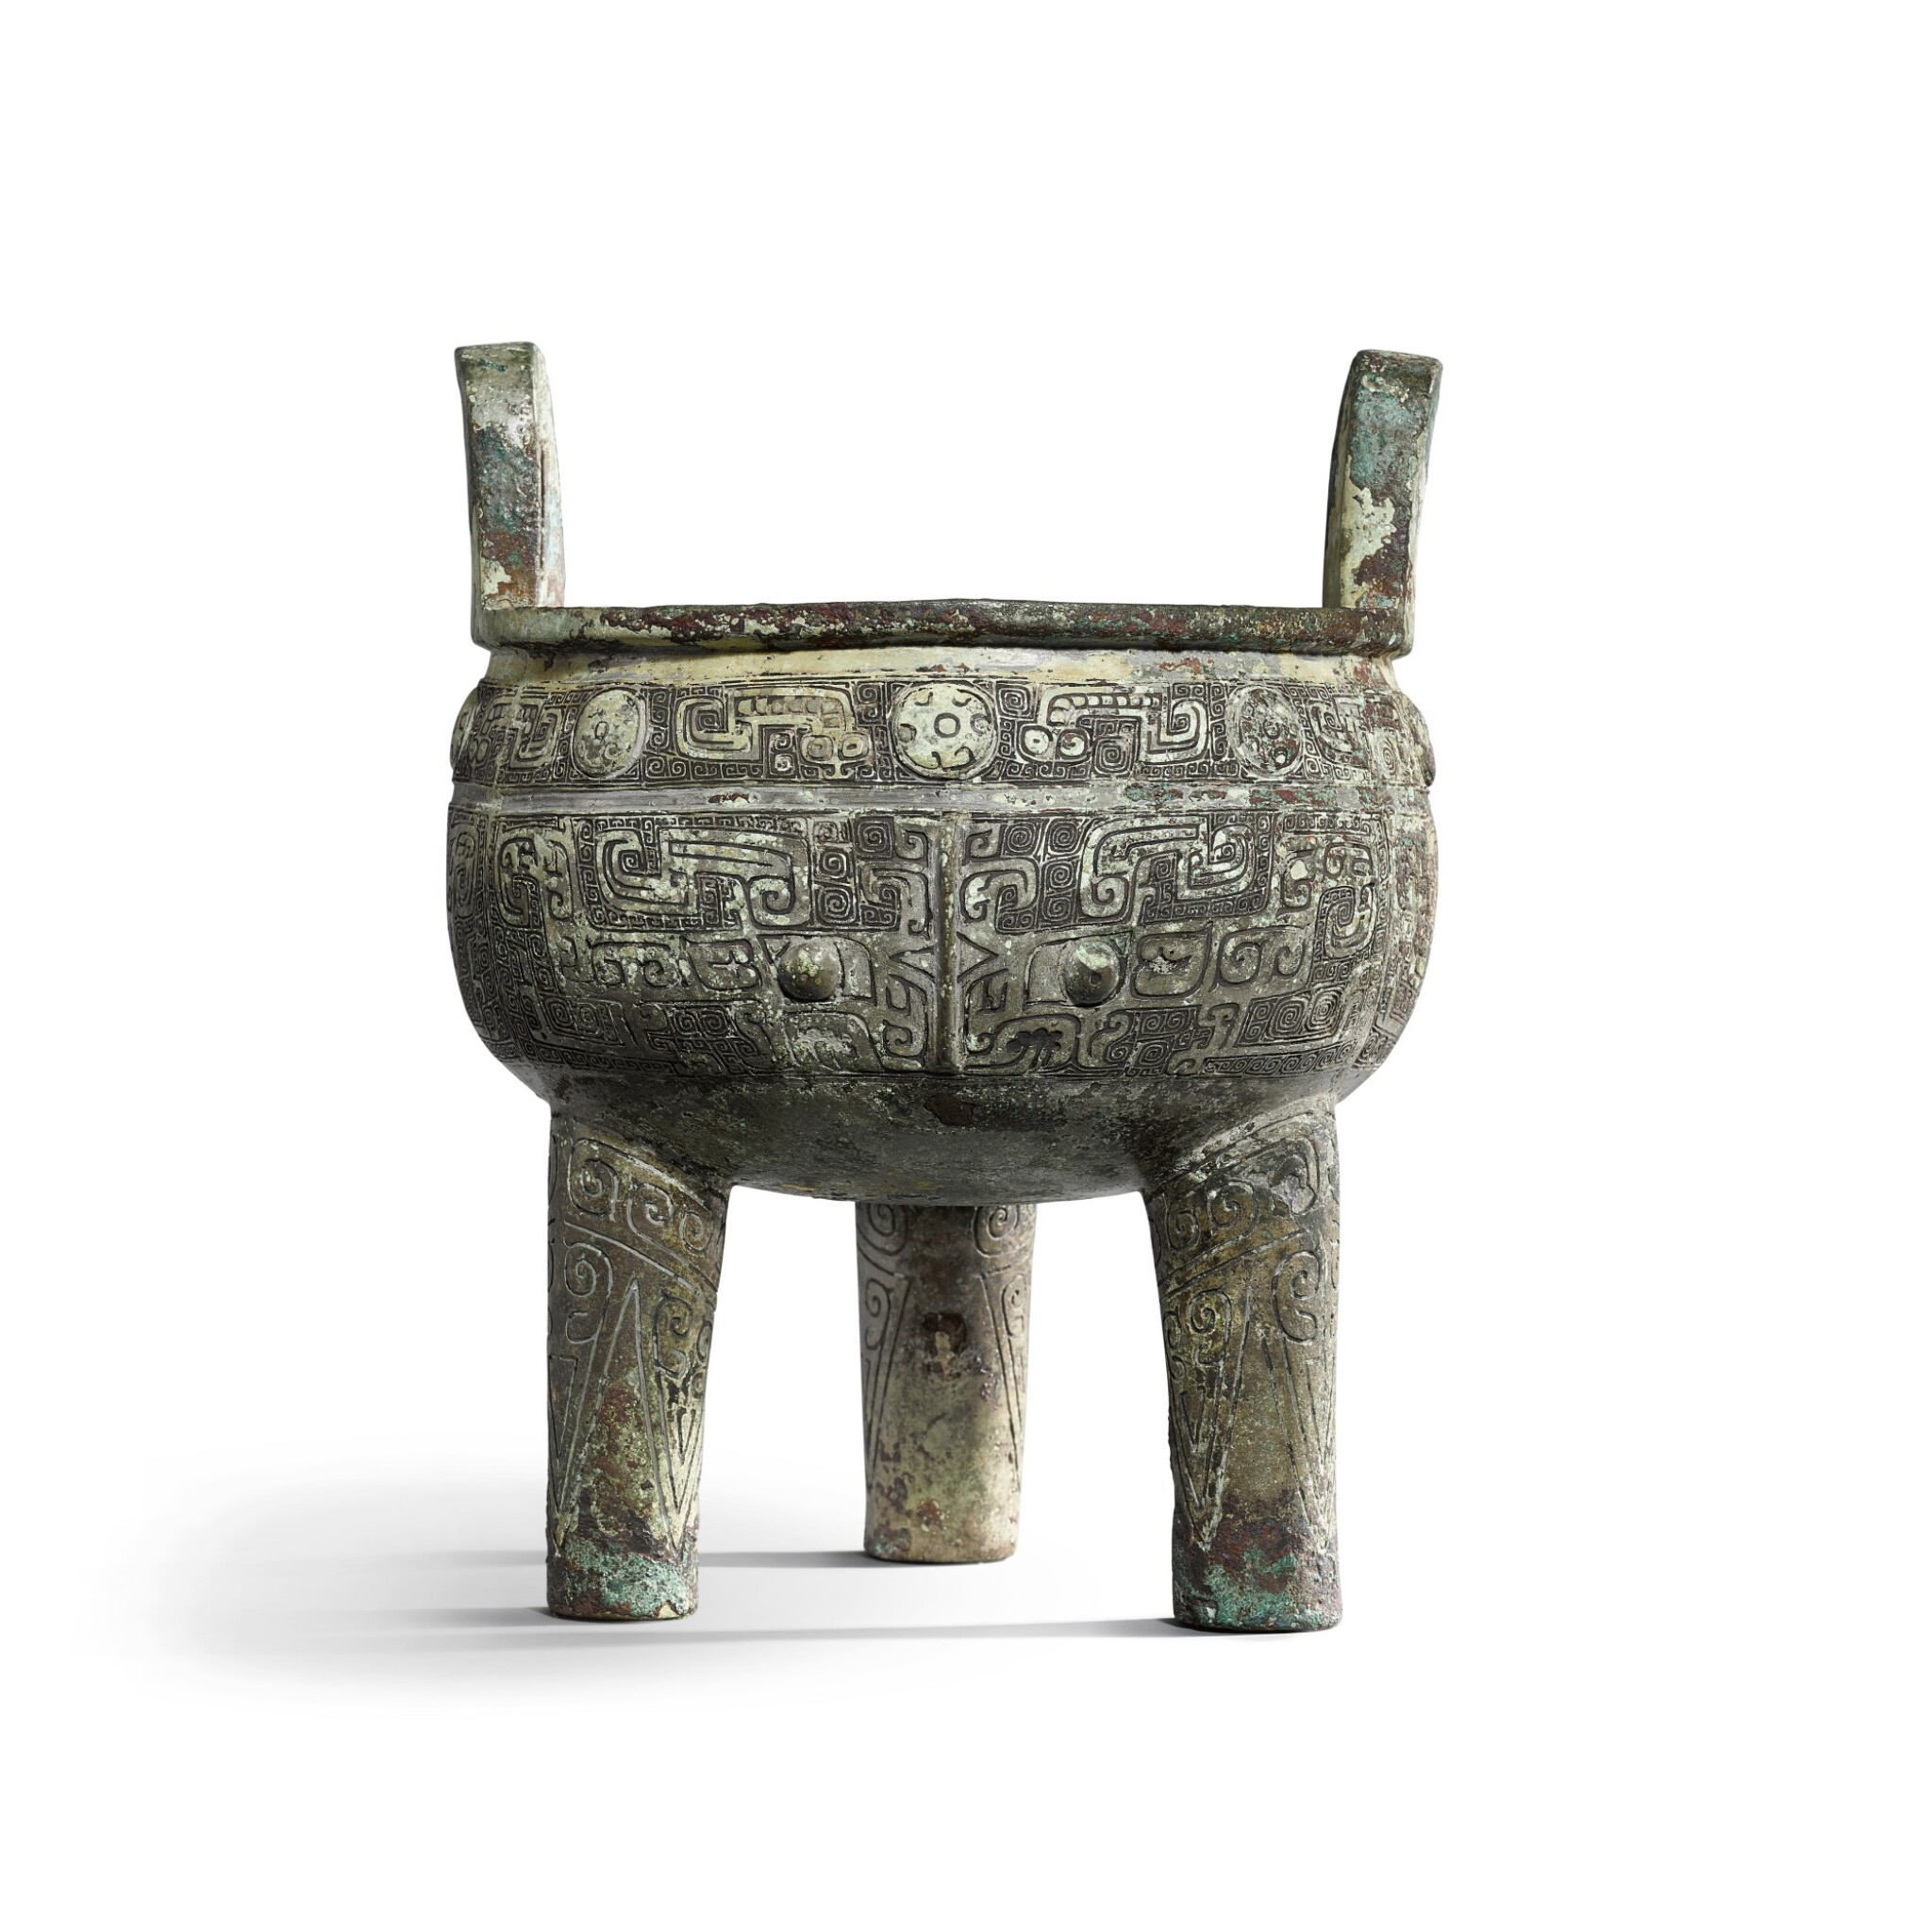 View full screen - View 1 of Lot 31. An important inscribed archaic ritual bronze food vessel (Ding), Late Shang dynasty, 13th - 11th century BC | 商末 公元前十三至十一世紀 犬祖辛祖癸鼎.